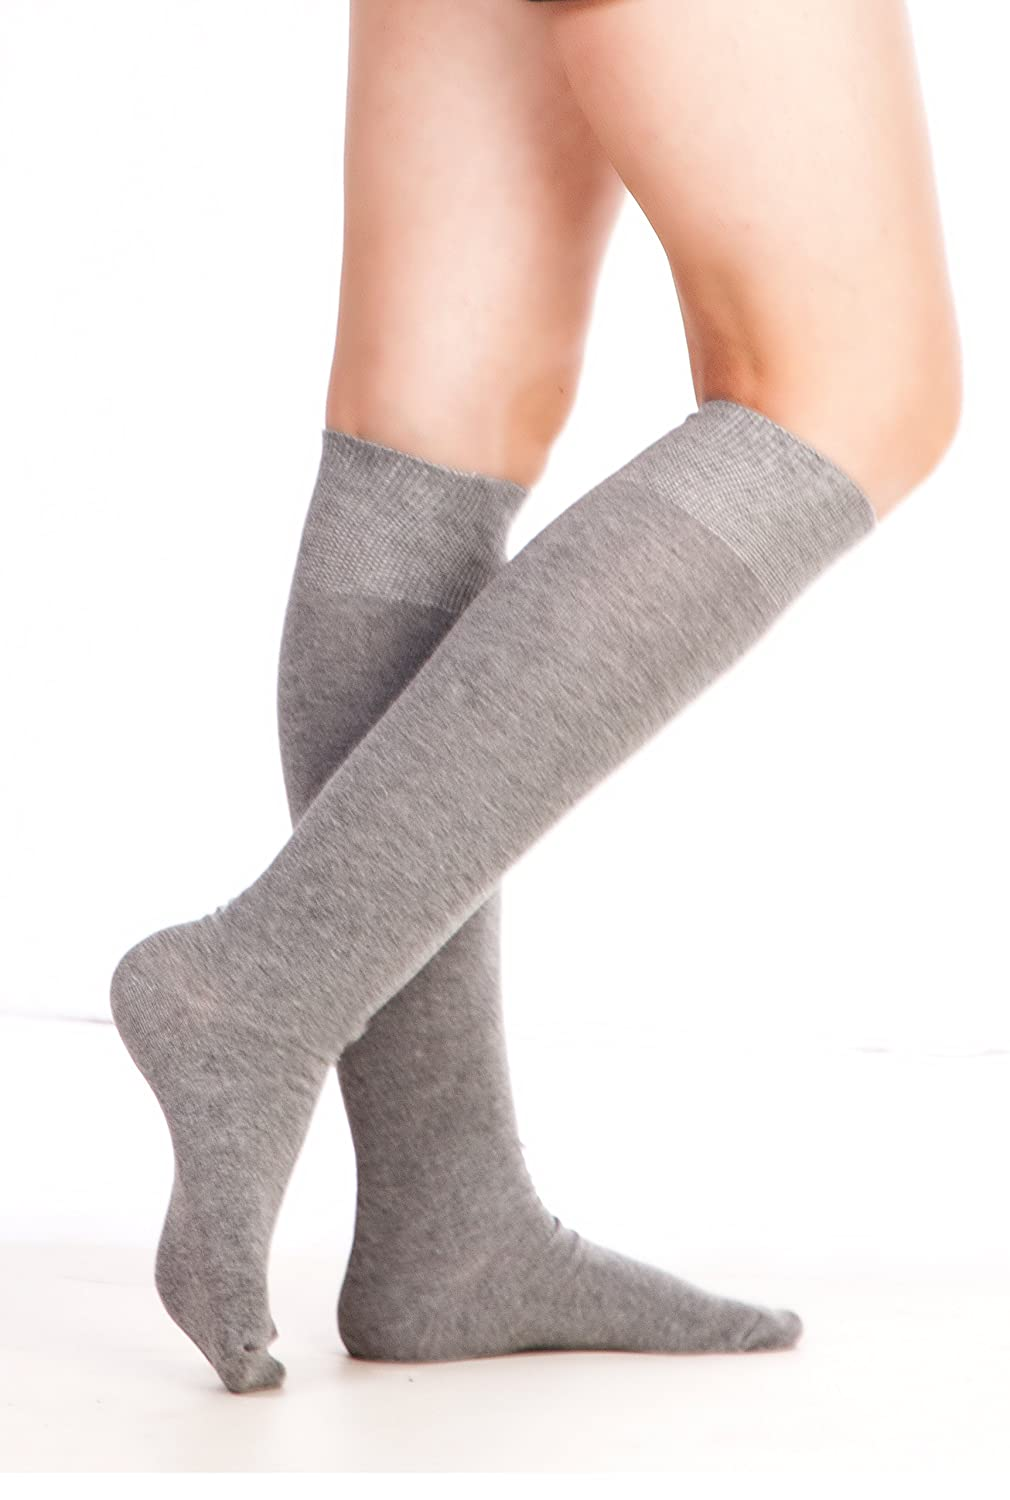 Chapini®, Ladies & Girls Soft Cotton Rich Plain Knee High Socks UK size 4-8 701 PL 01